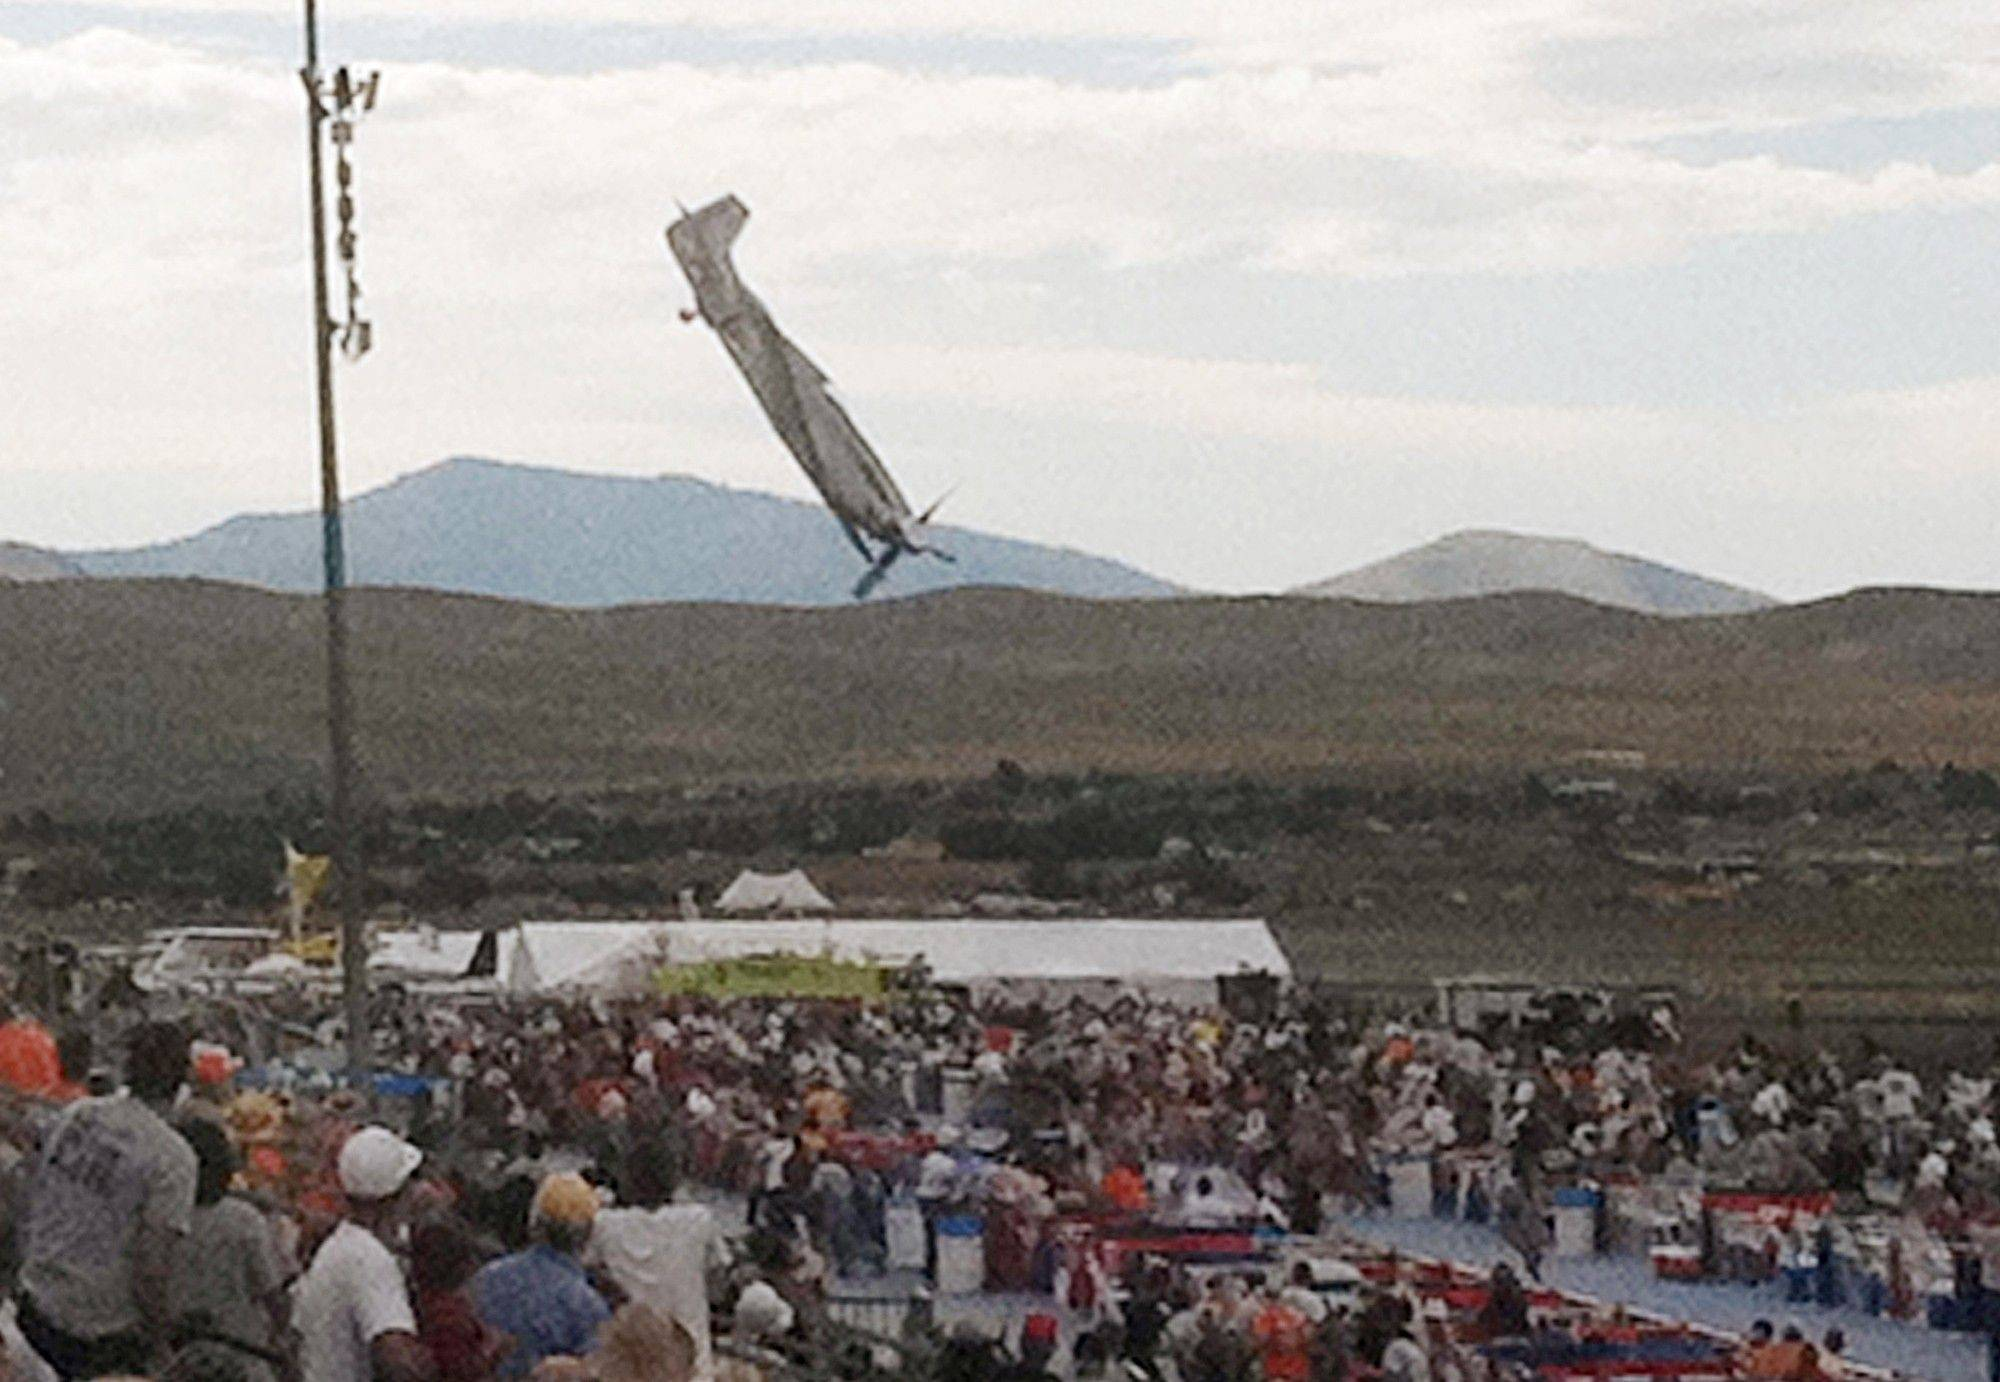 A P-51 Mustang airplane approaches the ground right before crashing during an air show in Reno, Nev., Friday. The vintage World War II-era fighter plane piloted by Jimmy Leeward plunged into the grandstands during the popular annual air show.